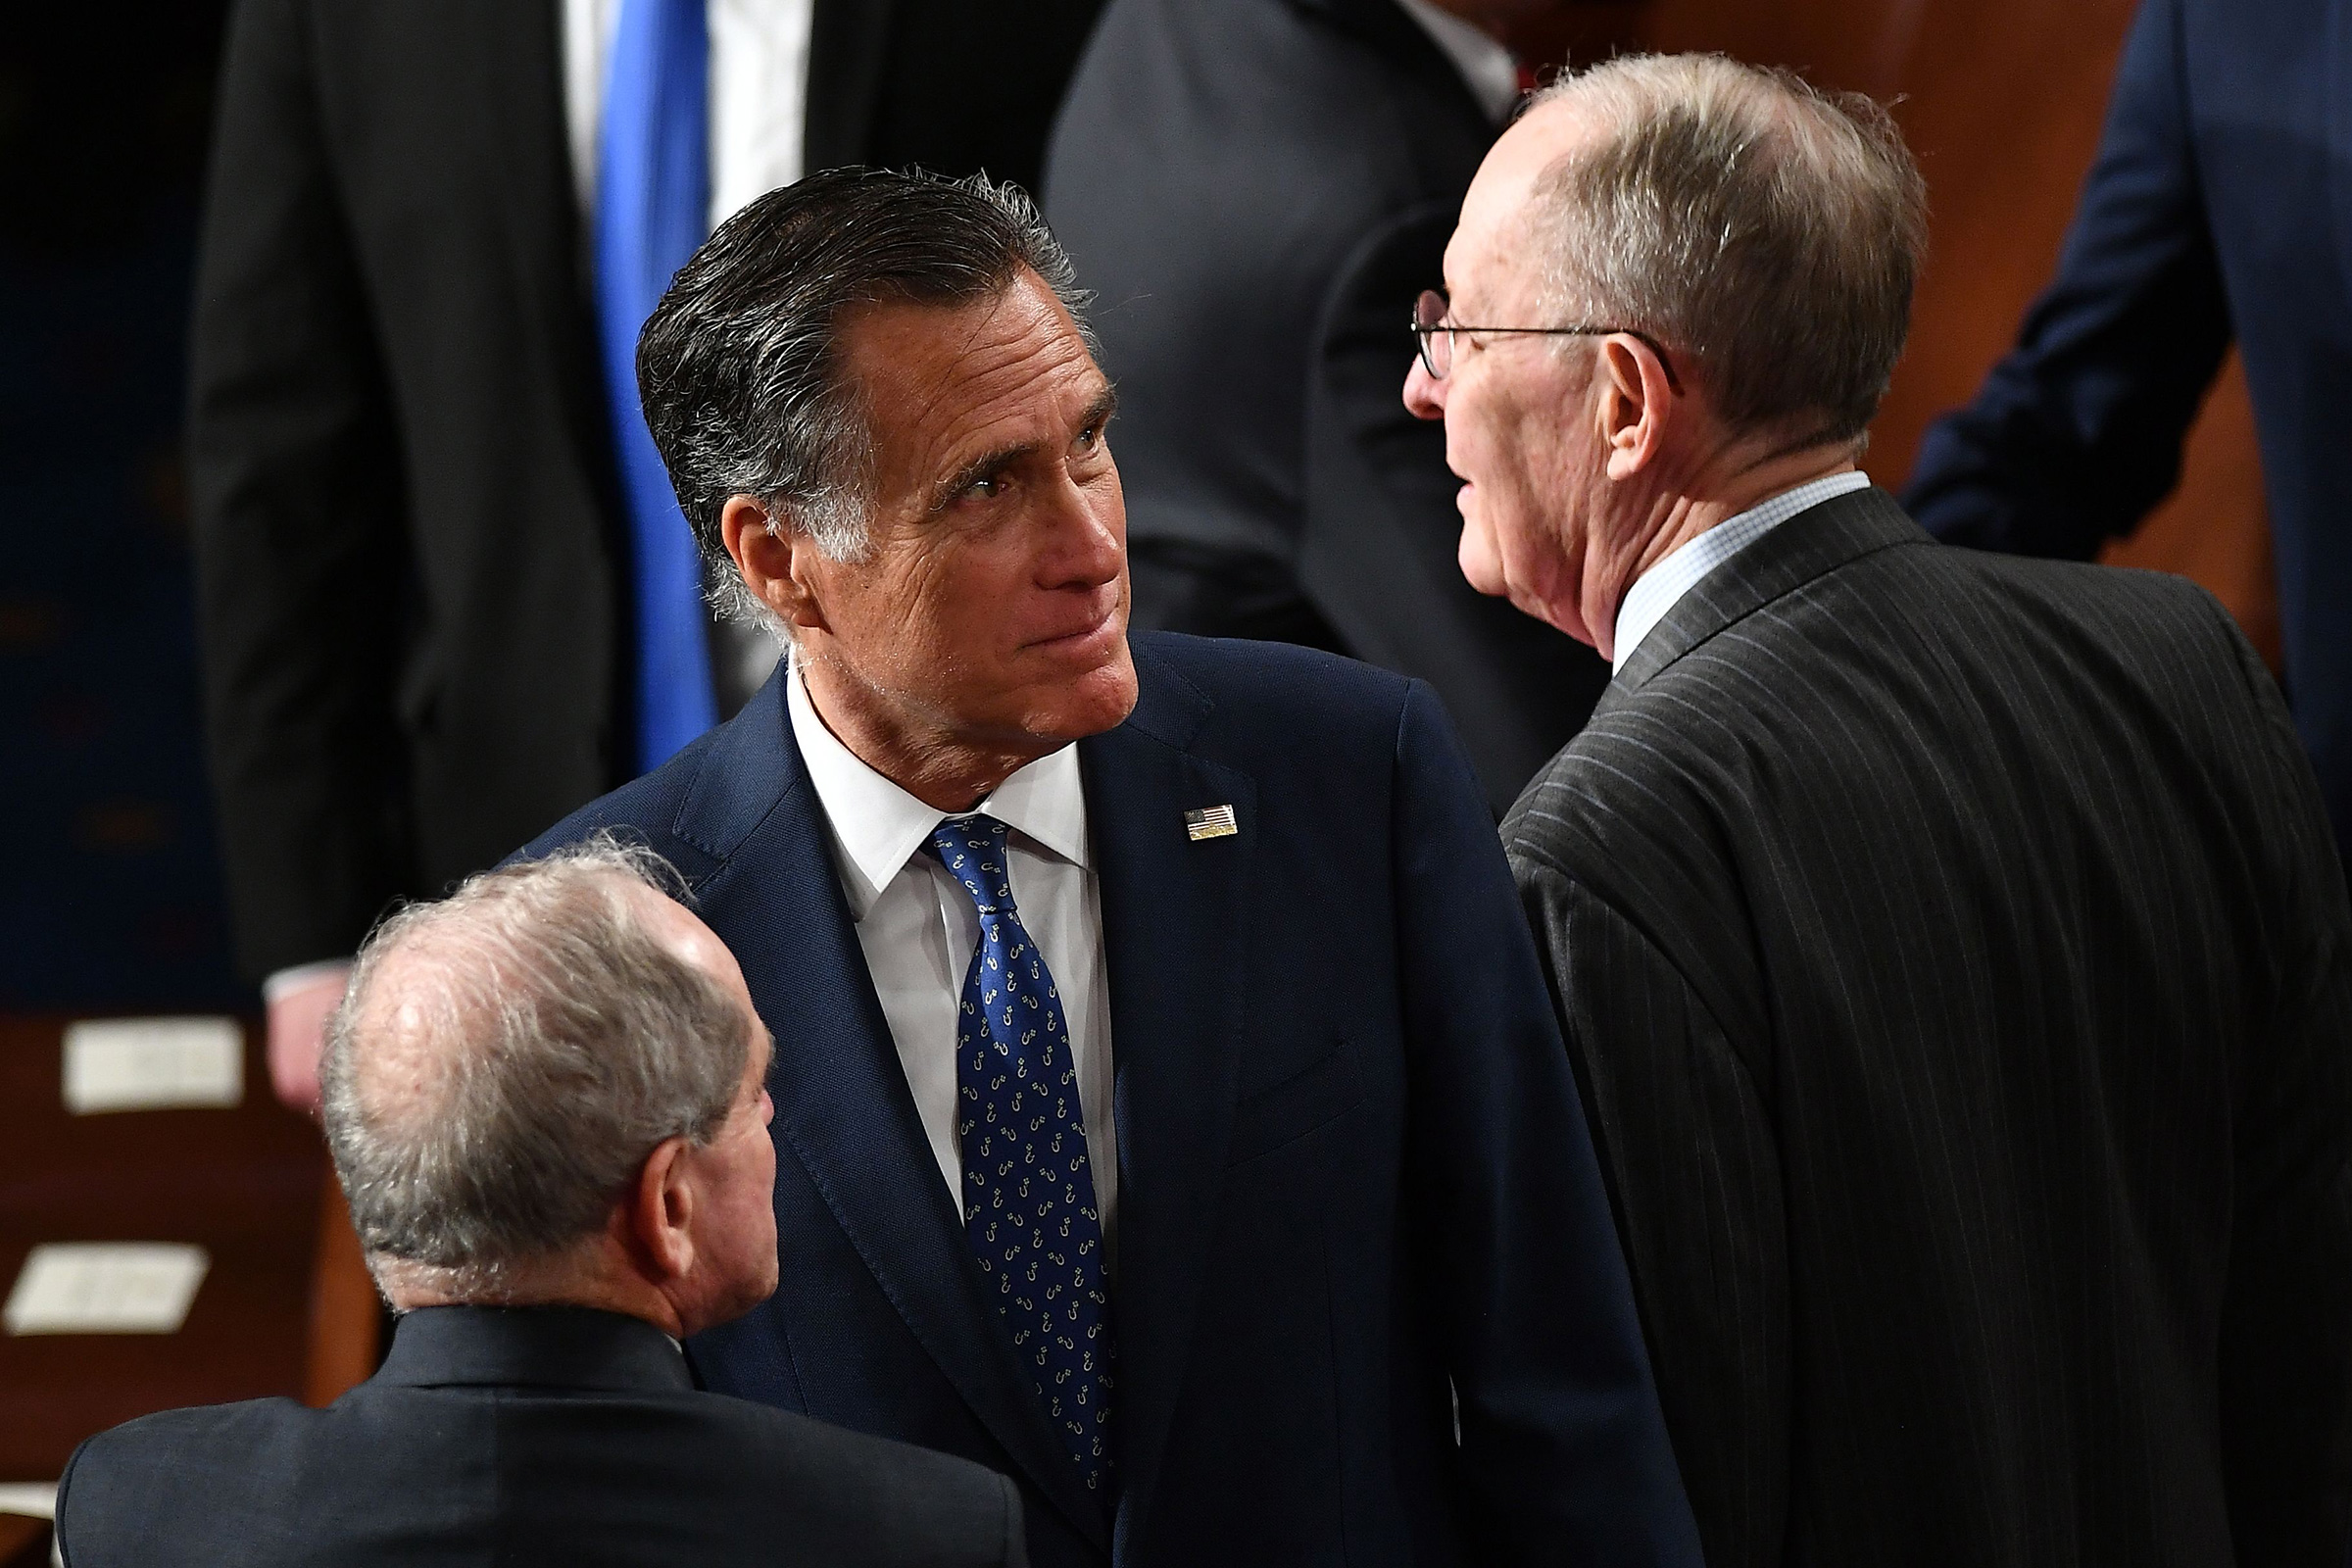 Sen. Mitt Romney seen ahead of President Donald Trump's State of the Union address at the US Capitol in Washington, DC, on Tuesday.